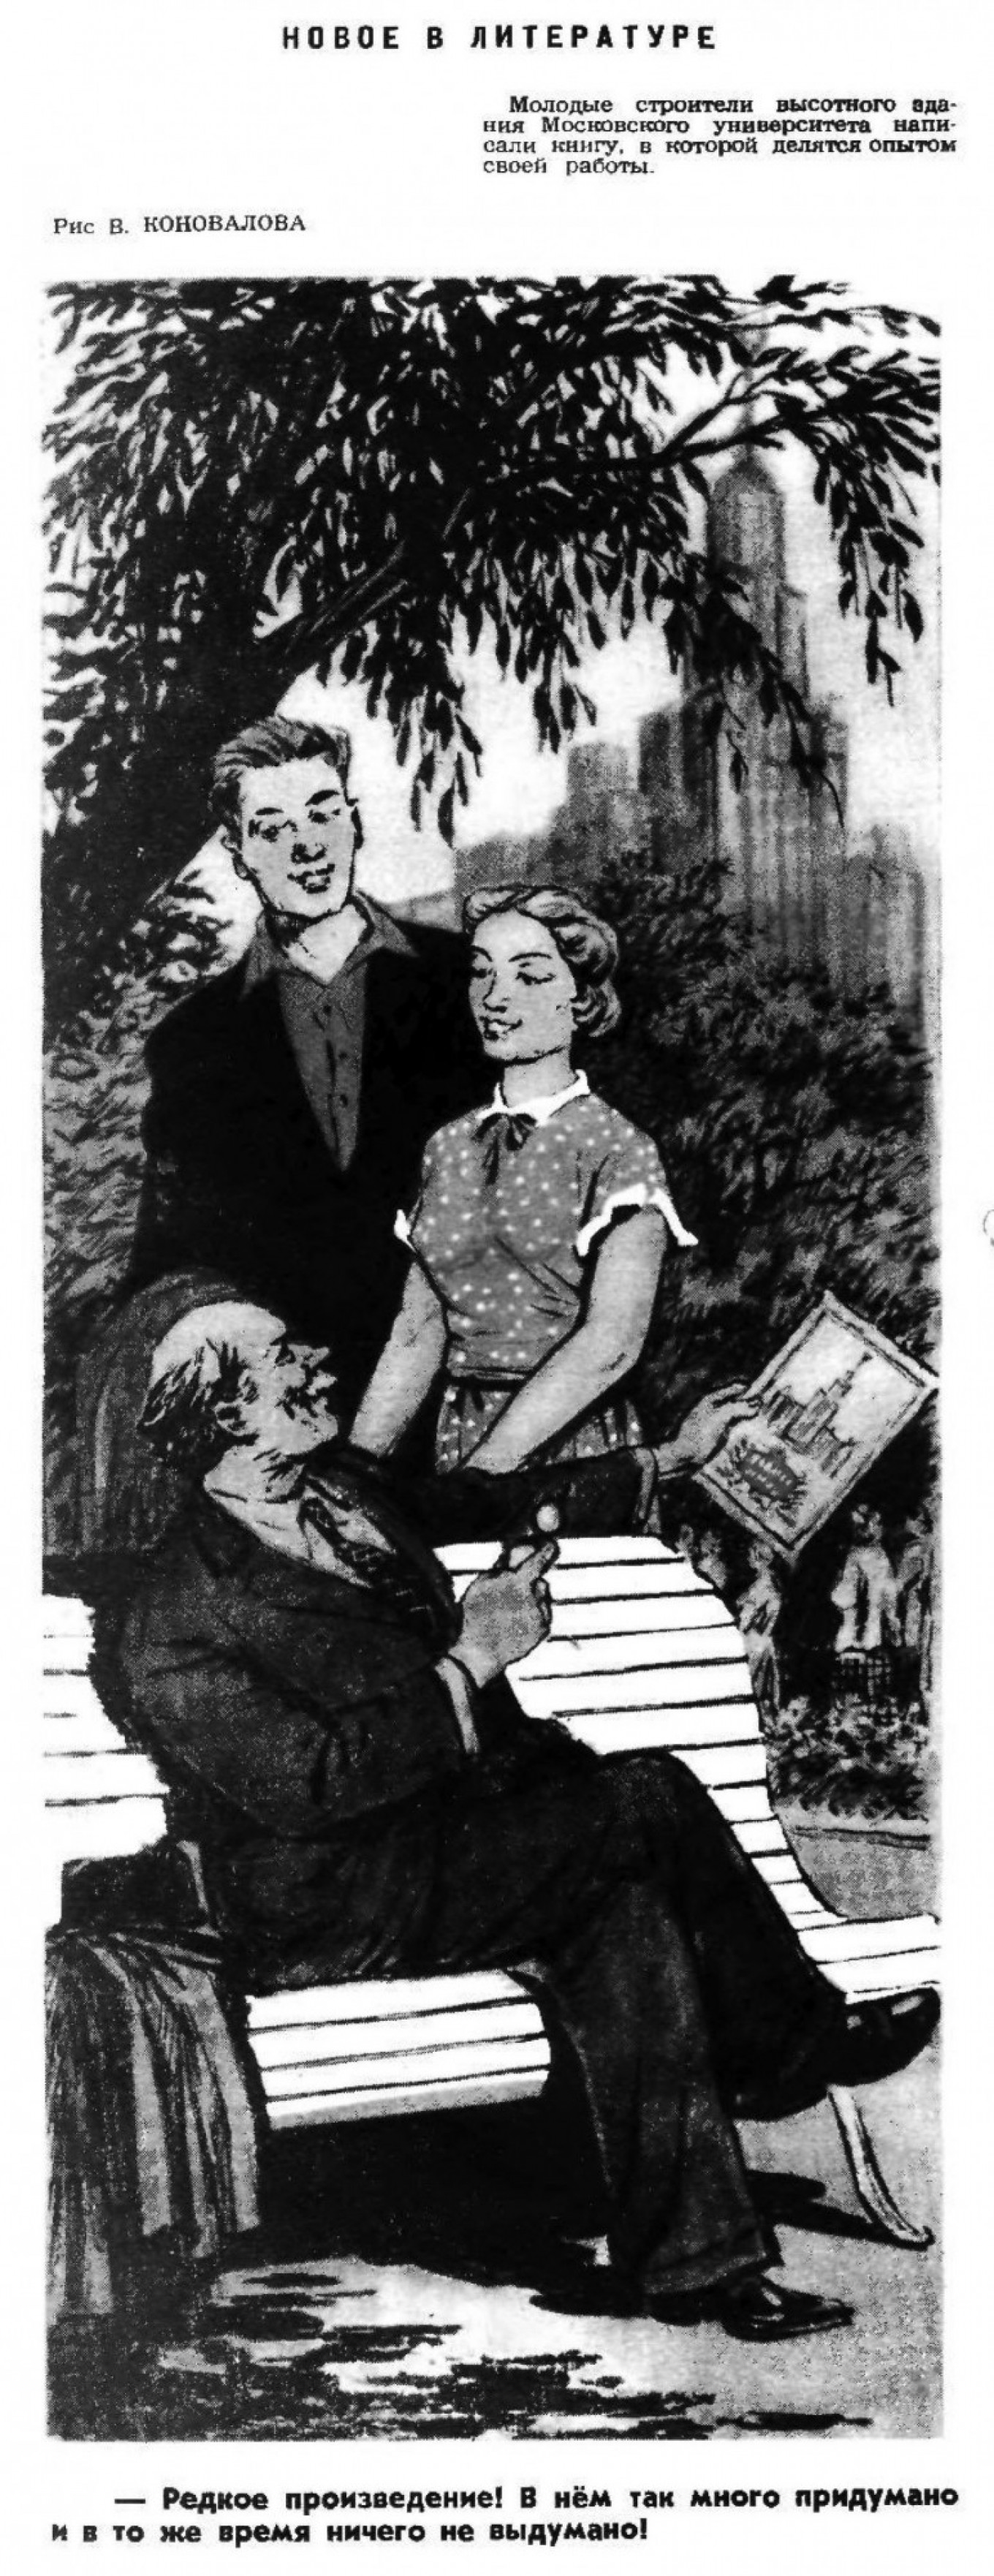 """Figure 6.1: """"New in Literature."""" Krokodil, August 20, 1952. Courtesy of """"Moscow Monumental"""""""